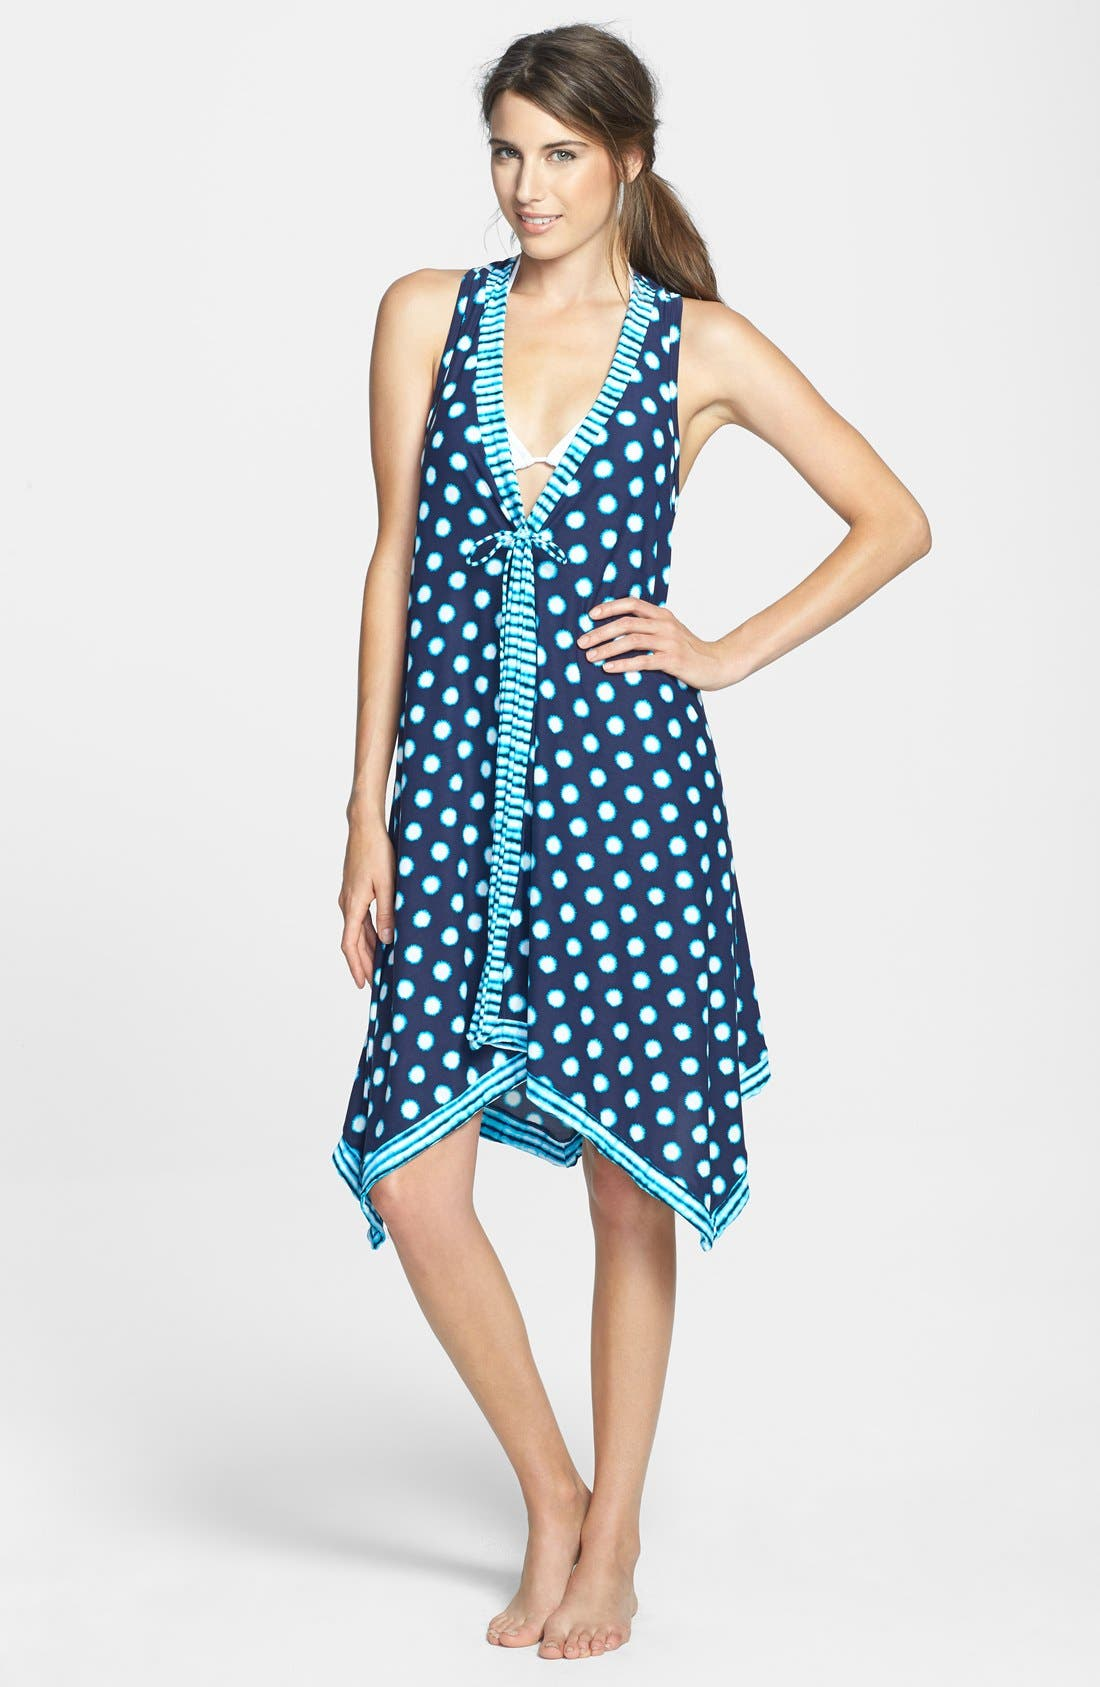 Main Image - Coco Reef 'High Tide Mix' Scarf Dress